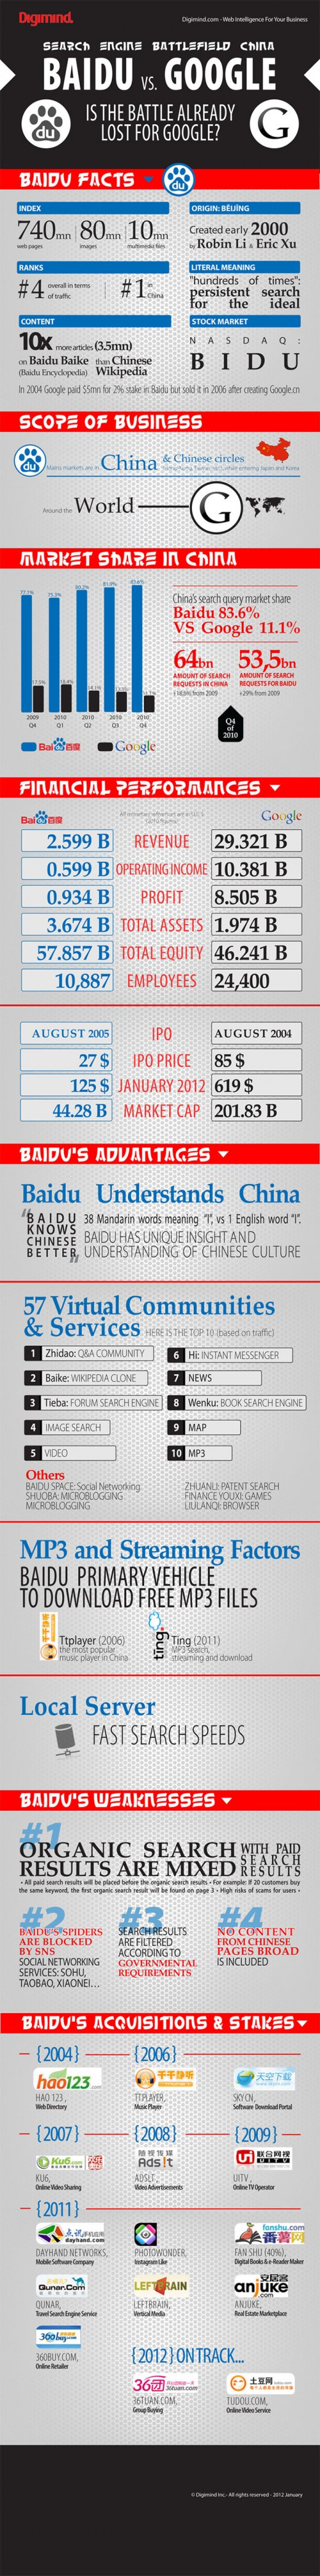 DigimindInfographic 1 520x4188 Sizing up two Internet giants: Google vs Baidu in China [Infographic]